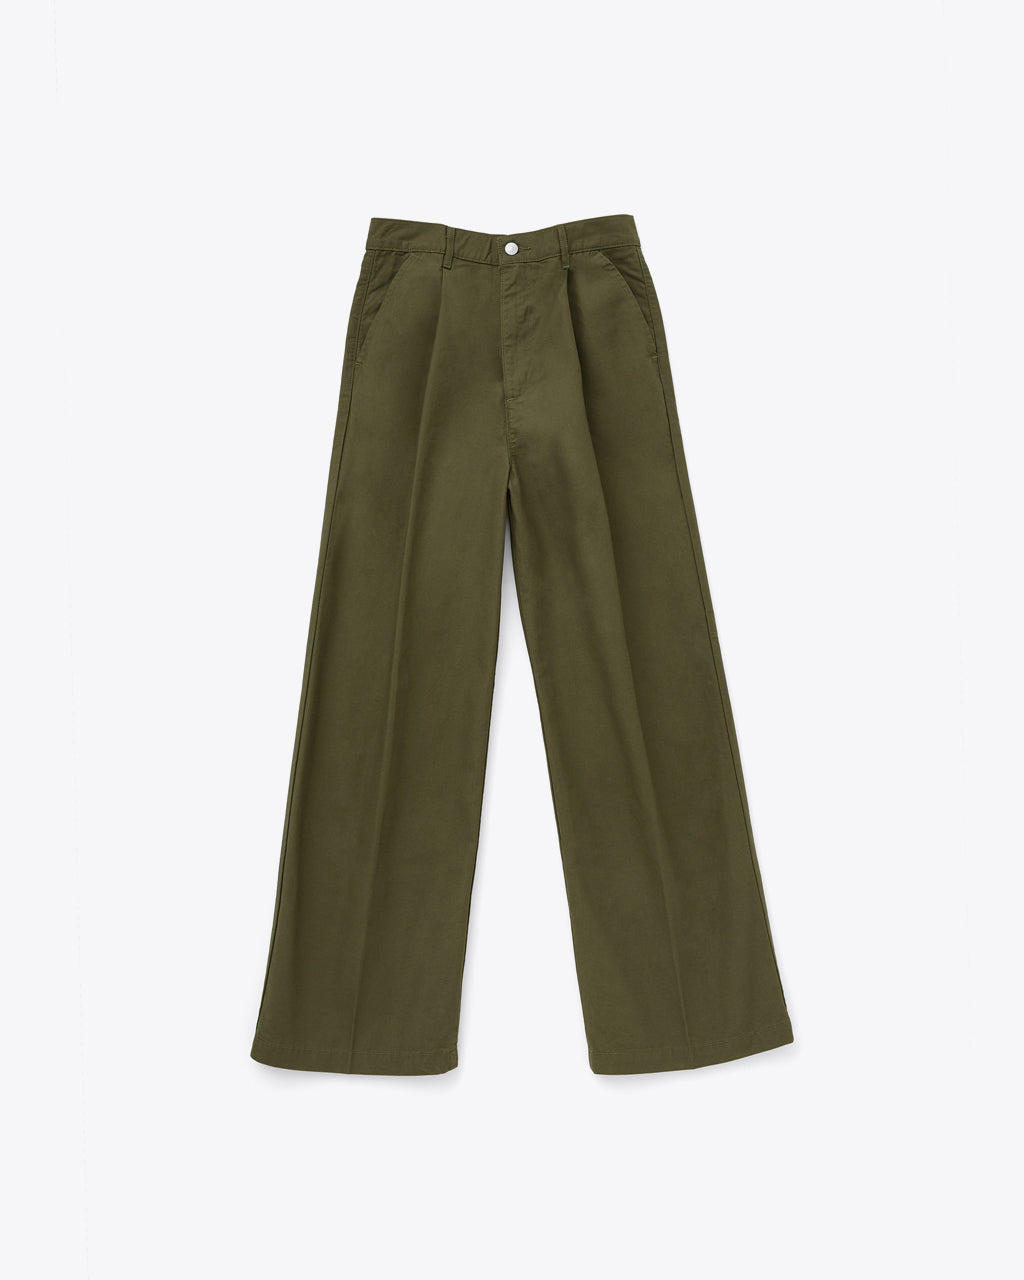 pleated olive pants with a loose fit